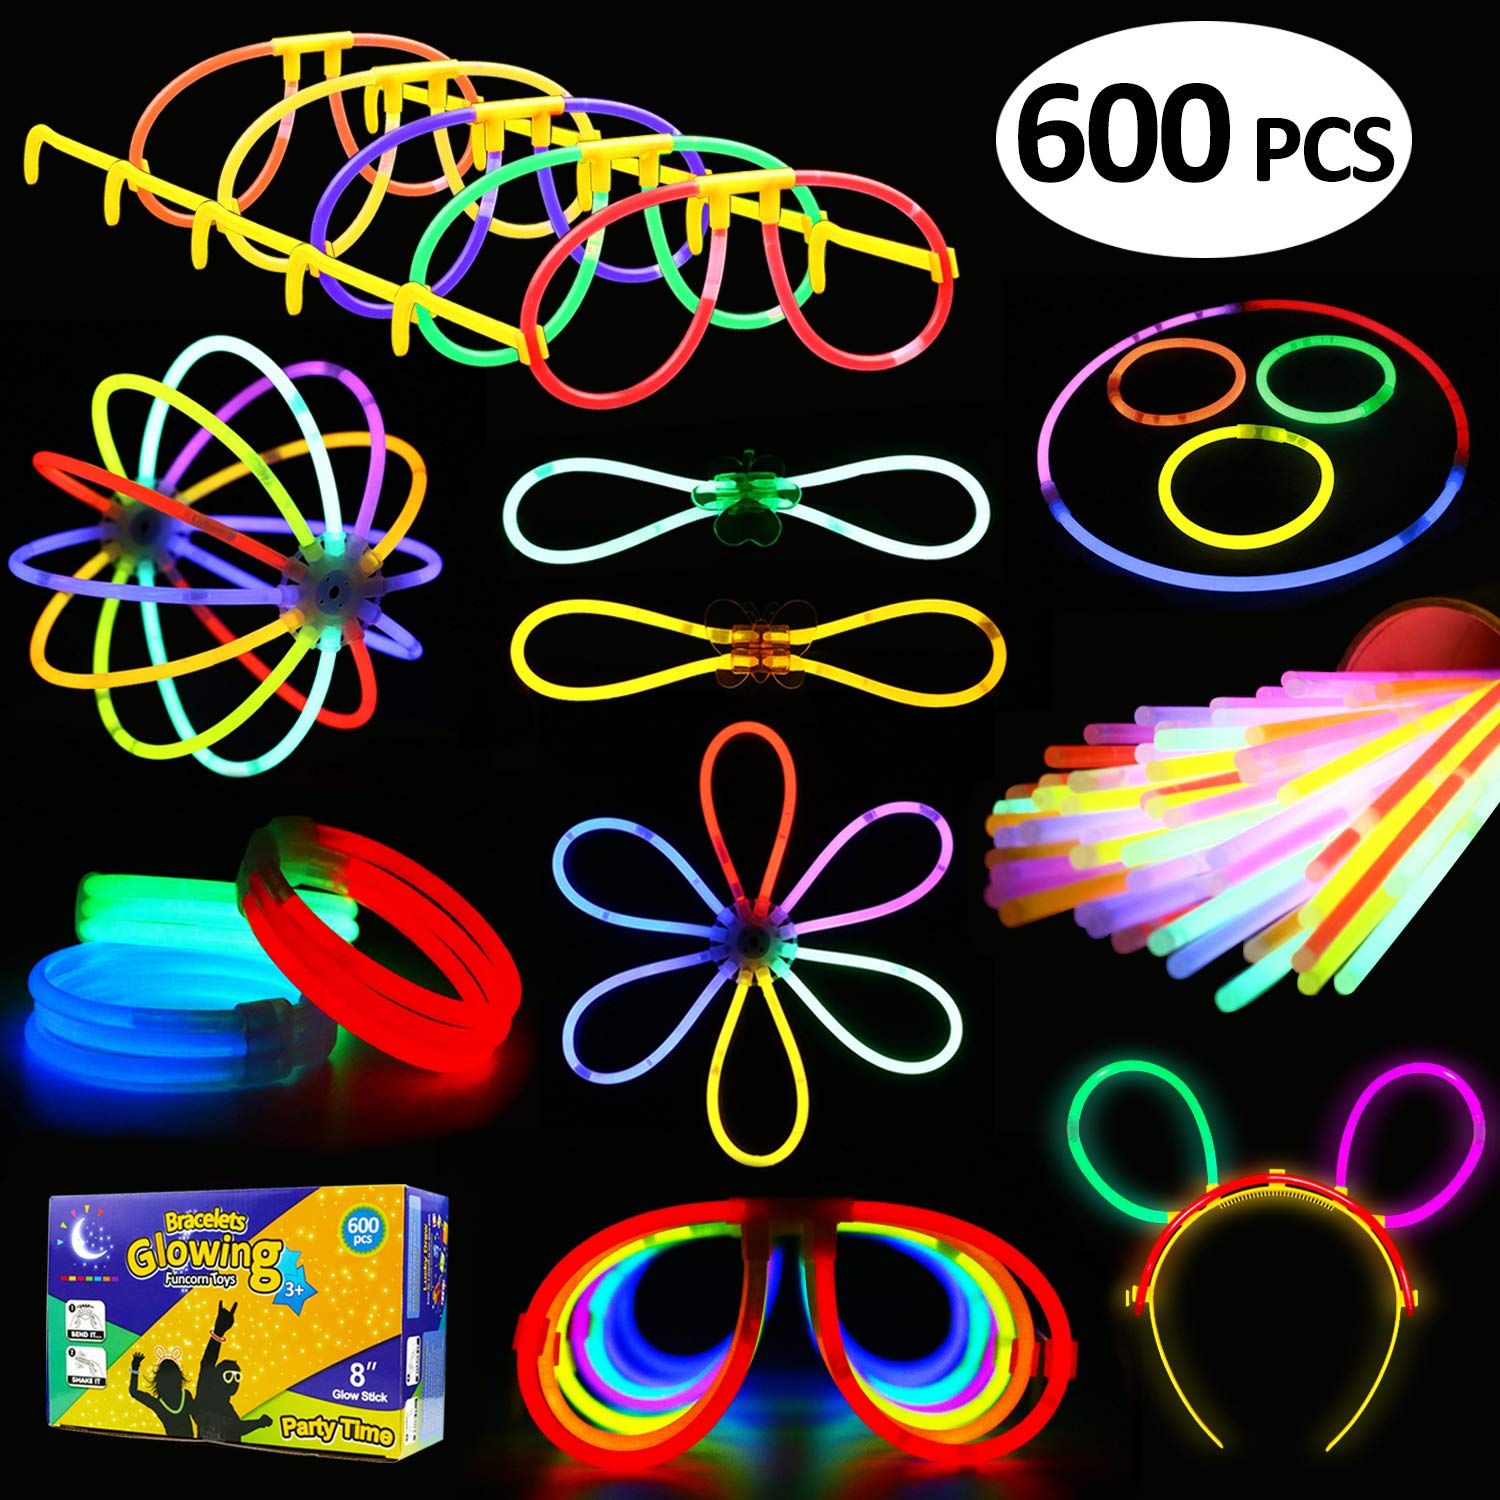 Glowstick, (600 Pcs Total) 250 Glow Sticks Bulk 7 Colour and Connectors for Bracelets Necklaces Balls Eyeglasses and More, Funcorn Toys Light up in The Dark Stick for Kid Party Birthday Halloween Gift by Funcorn Toys